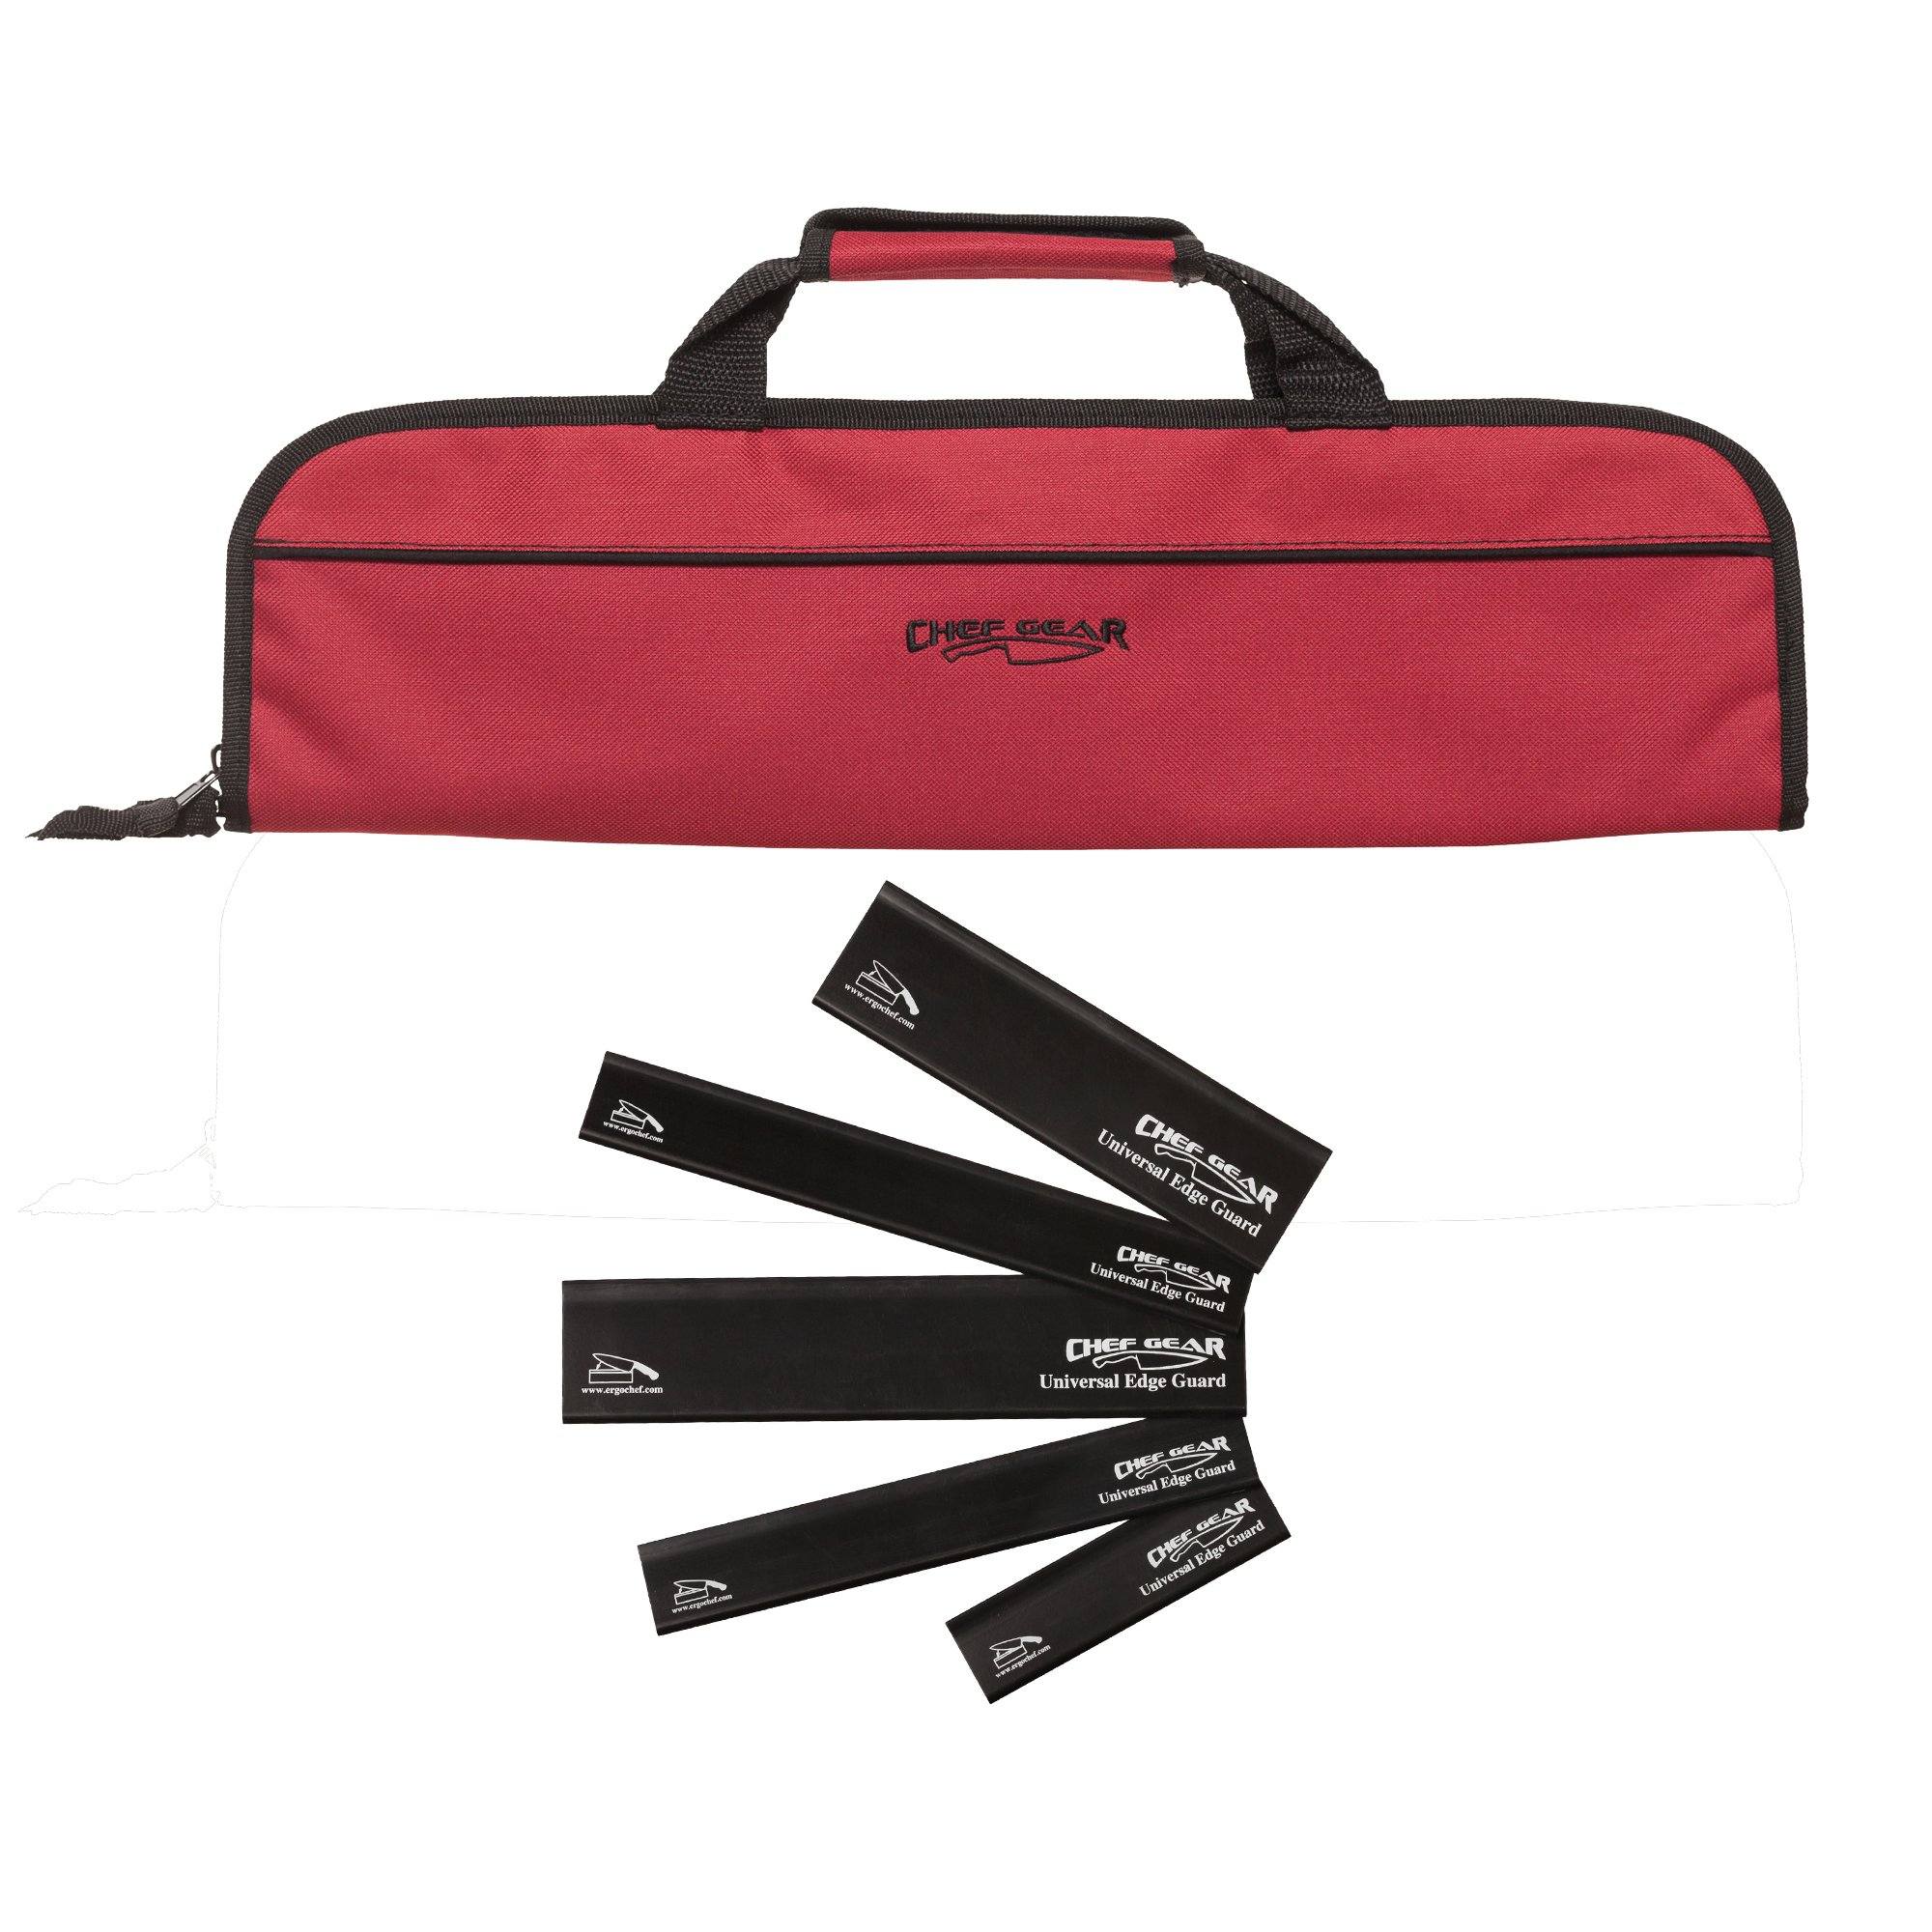 5 Pocket Padded Chef Knife Case Roll with 5 pc. Edge Guards (Red 5 Pocket bag w/5pc. Black Edge guards)